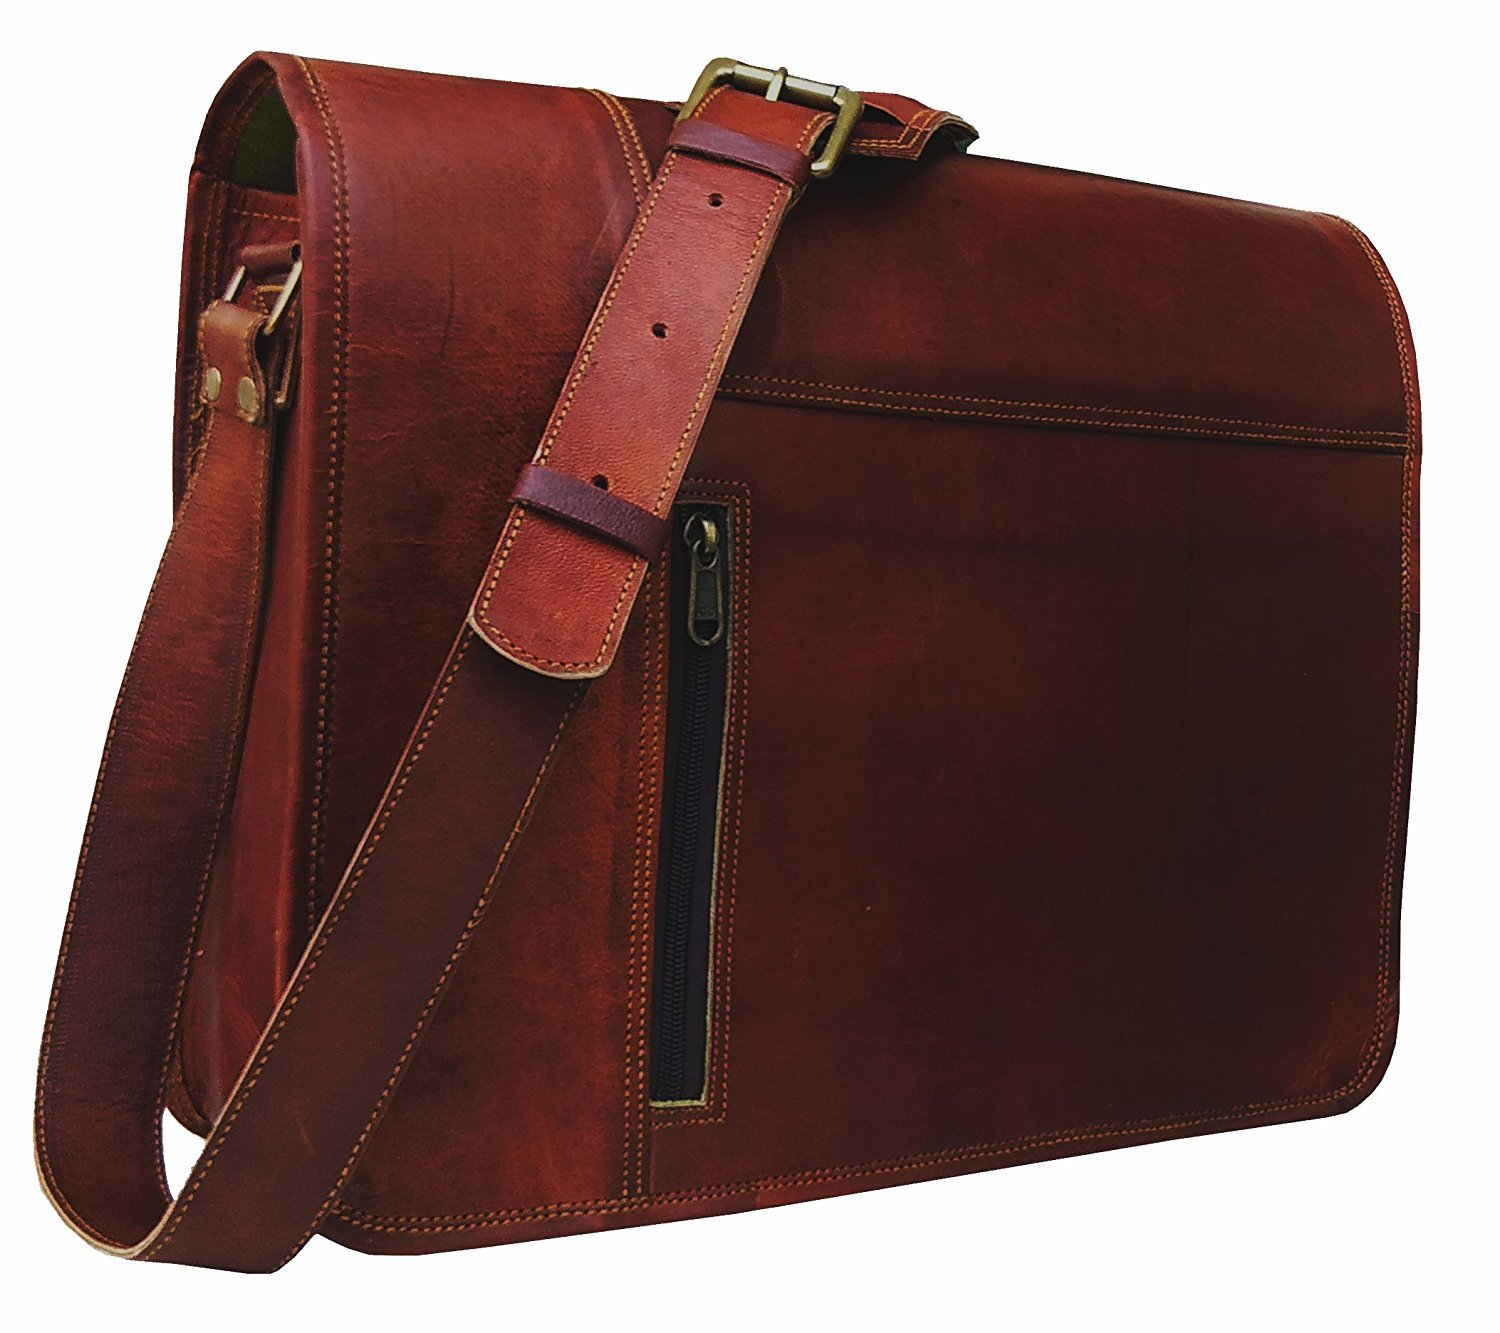 Leather Laptop Messenger Bag Vintage briefcase Satchel for Men and Women- 16 Inch by VINTAGE COUTURE cuero